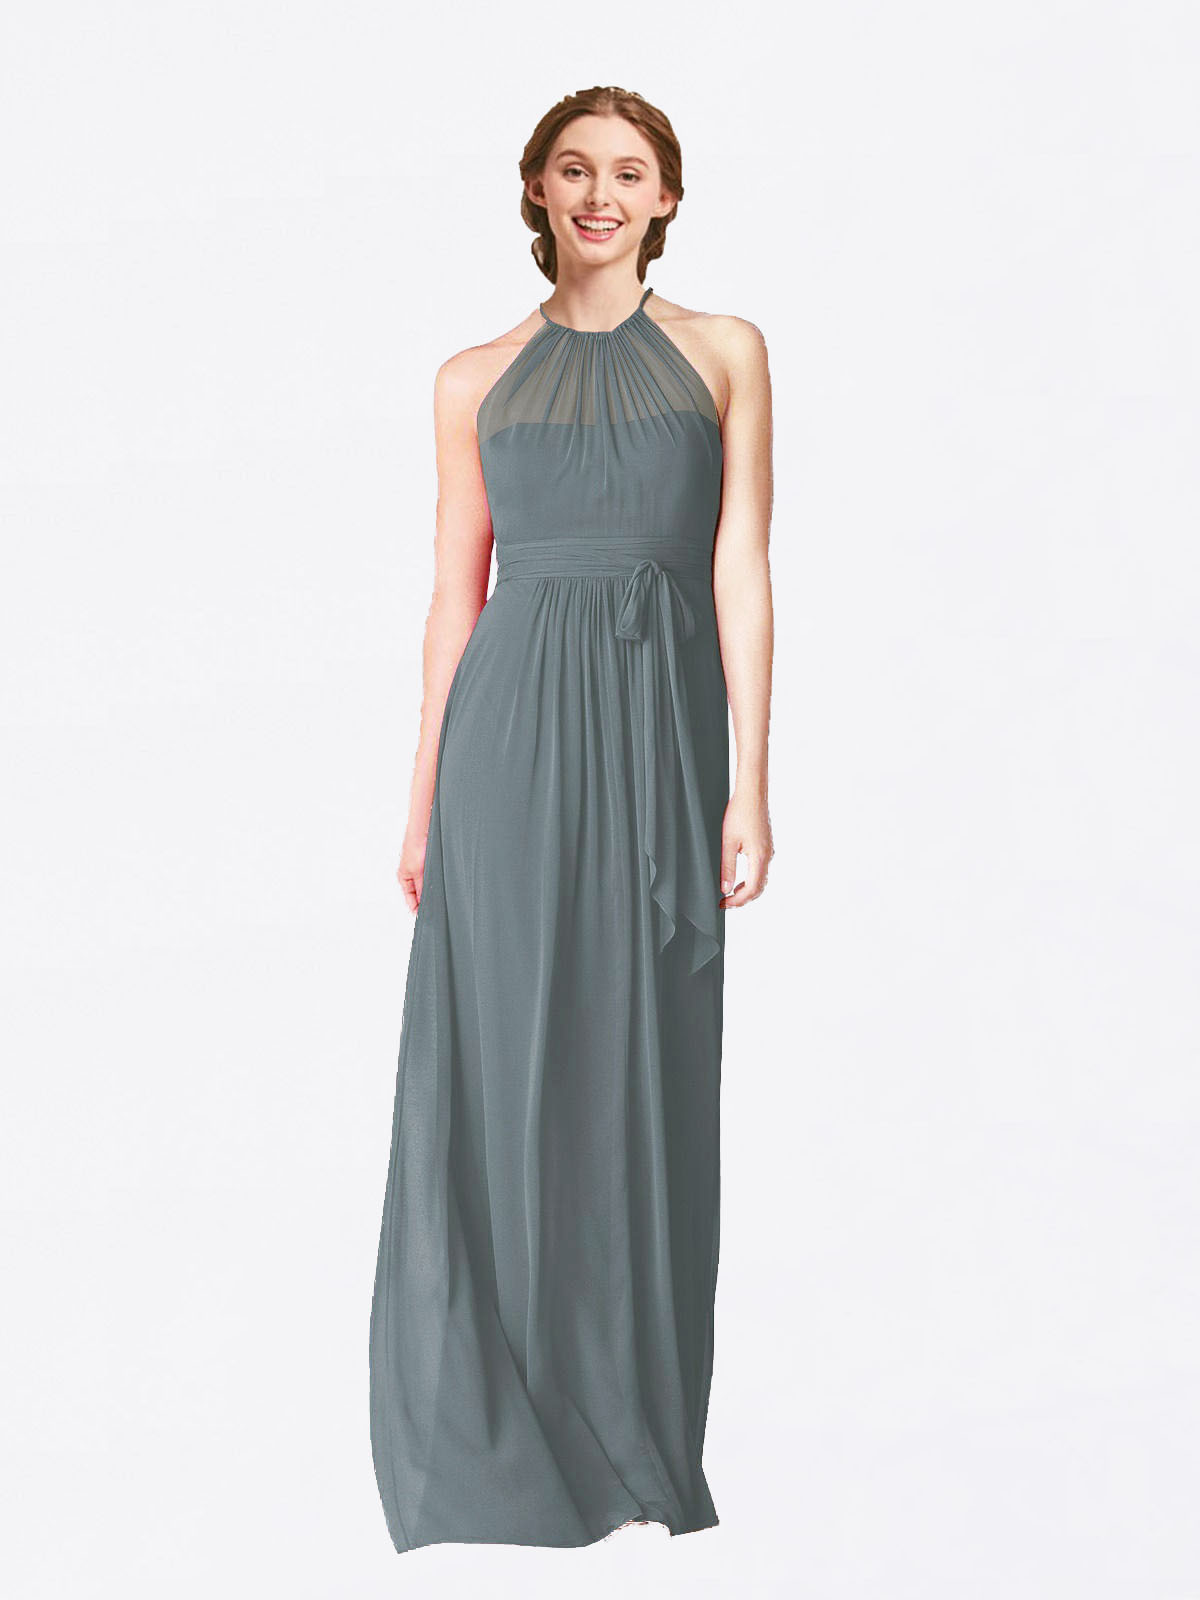 Long A-Line Halter Sleeveless Slate Grey Chiffon Bridesmaid Dress Laura